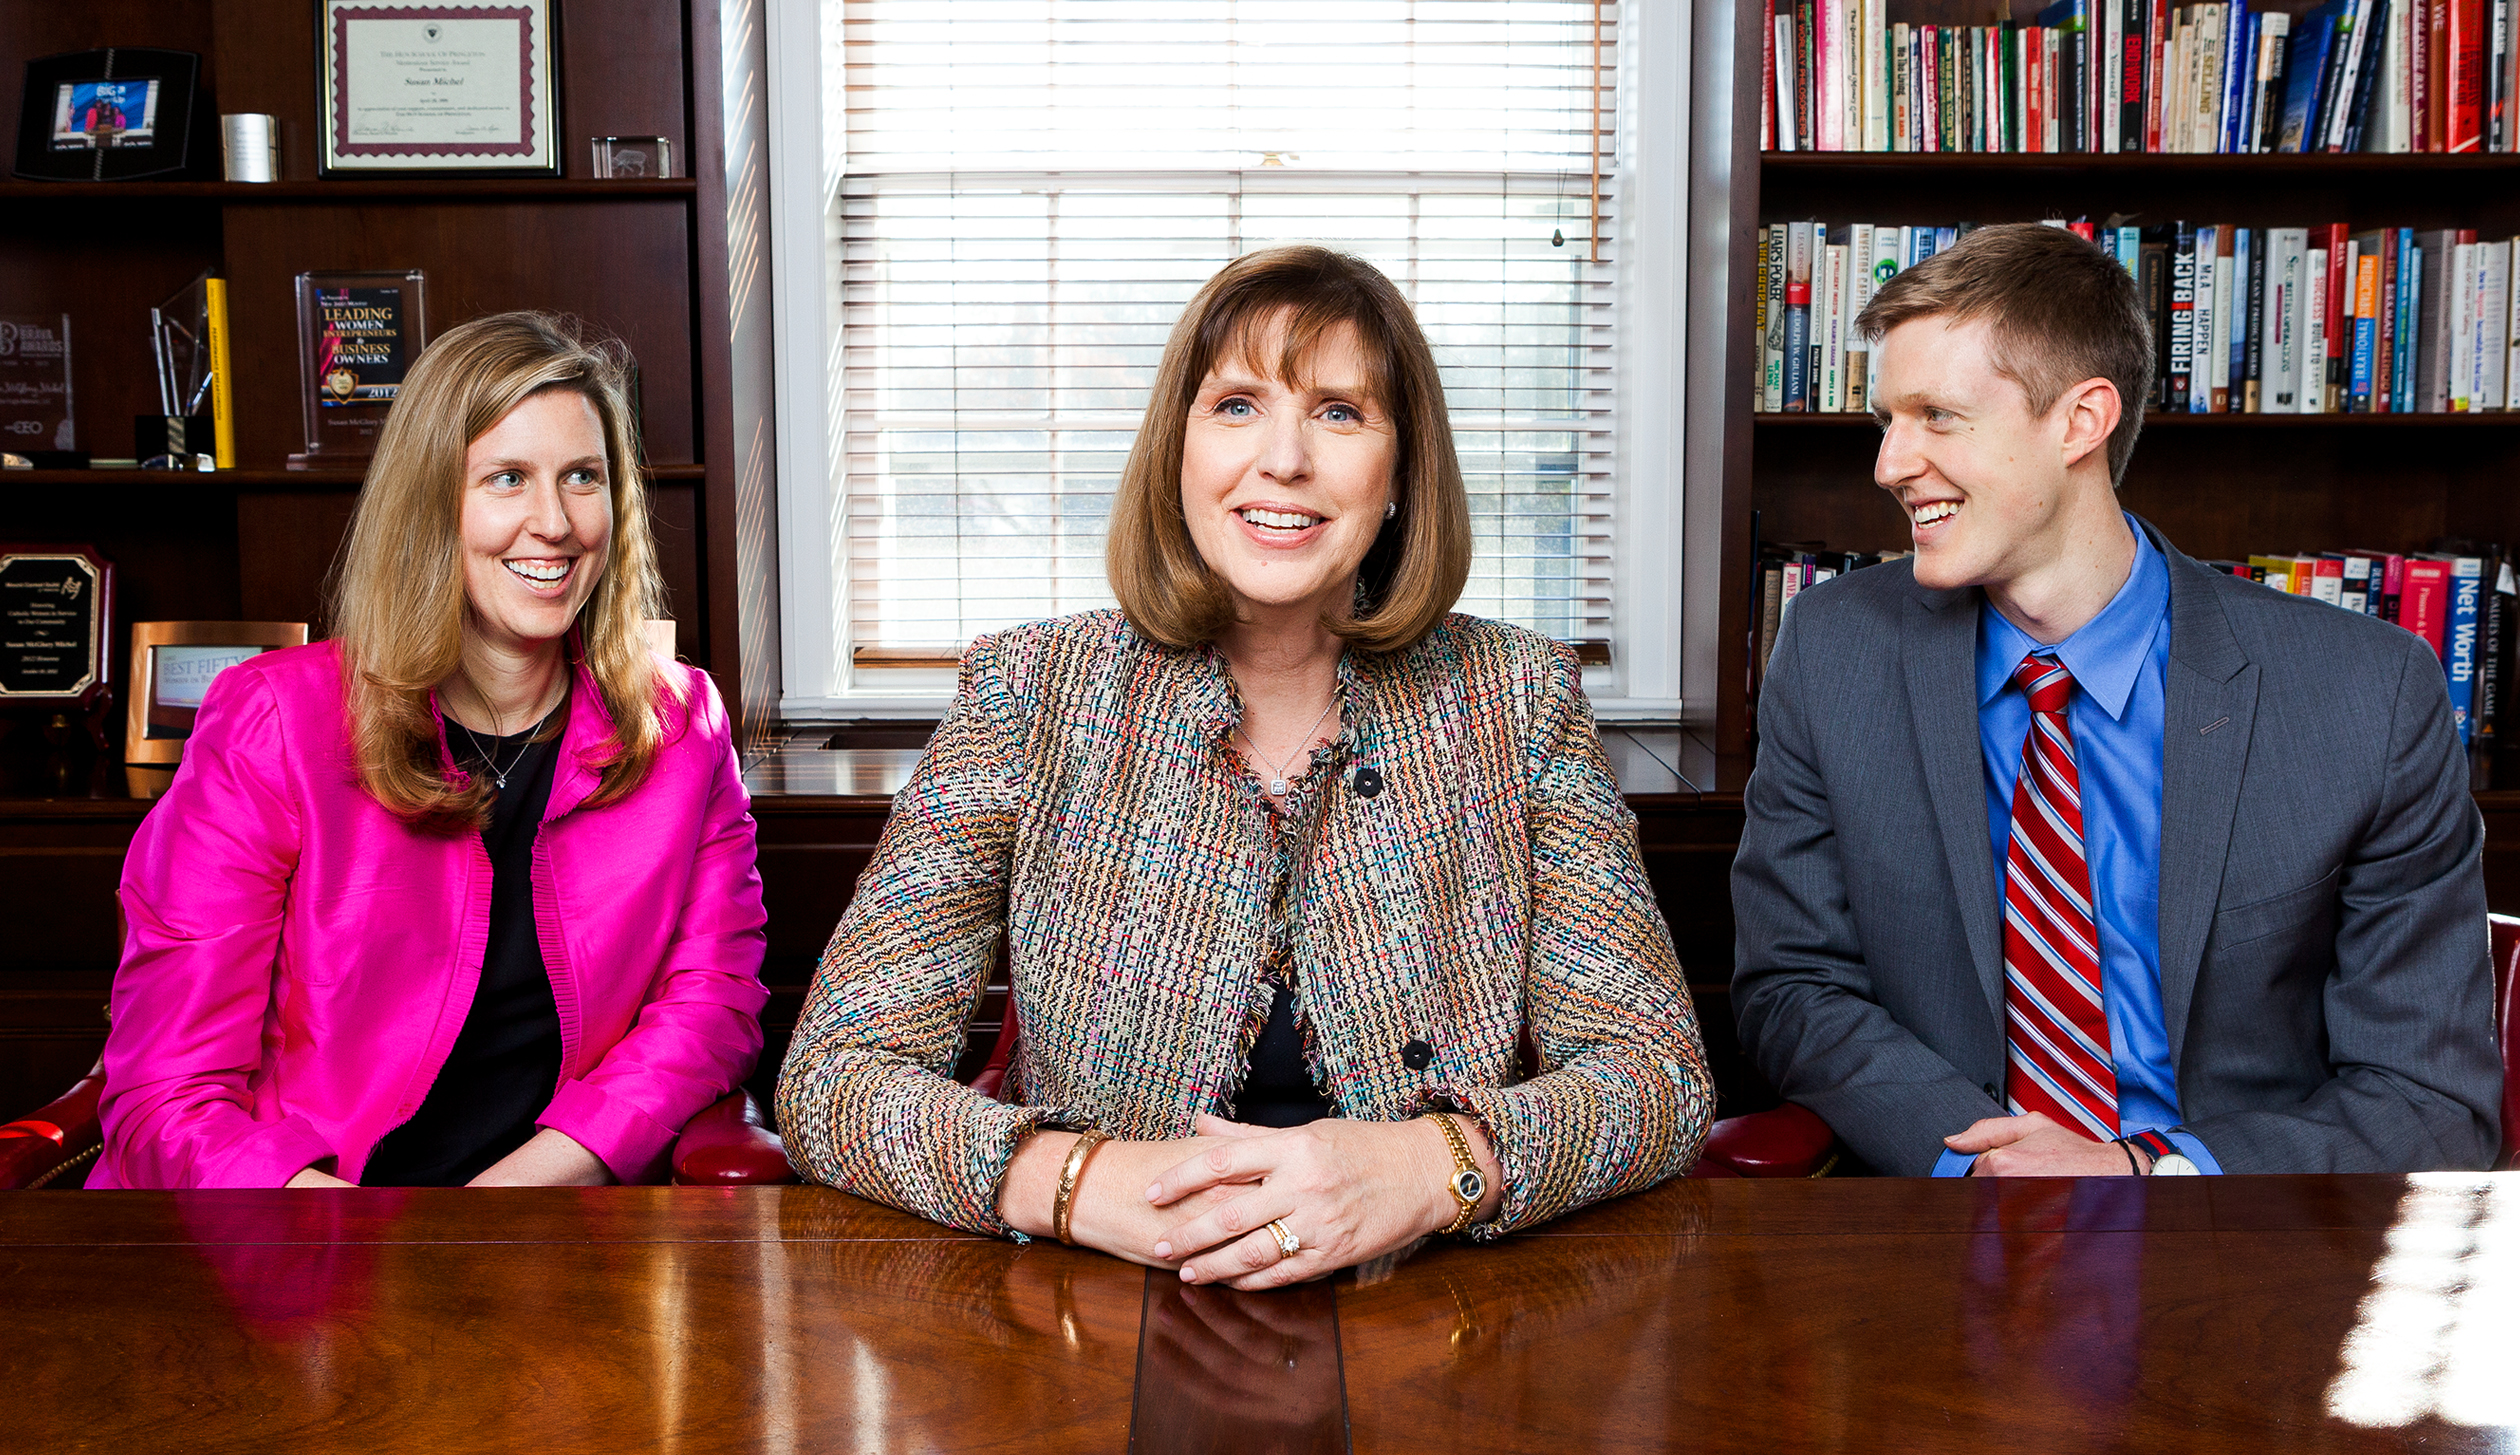 FAMILIAL ADVICE: Susan ­Michel (center) and her children Carol Ann and Rob at her Princeton, N.J., financial firm, which the kids may run someday.